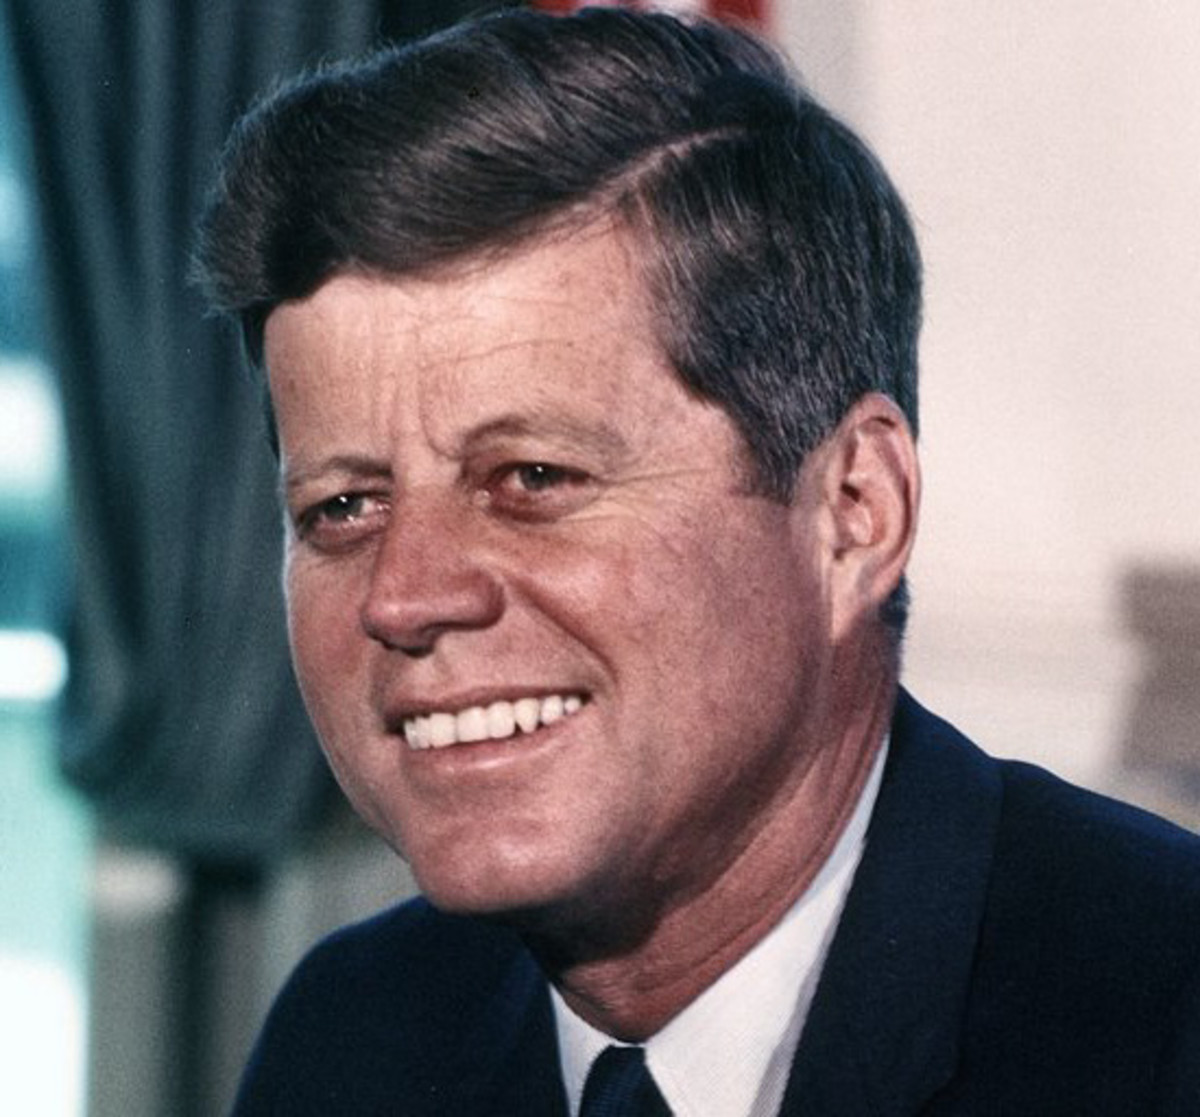 """During his inaugural address, President Kennedy said, """"The rights of man come not from the generosity of the state, but from the hand of God."""""""